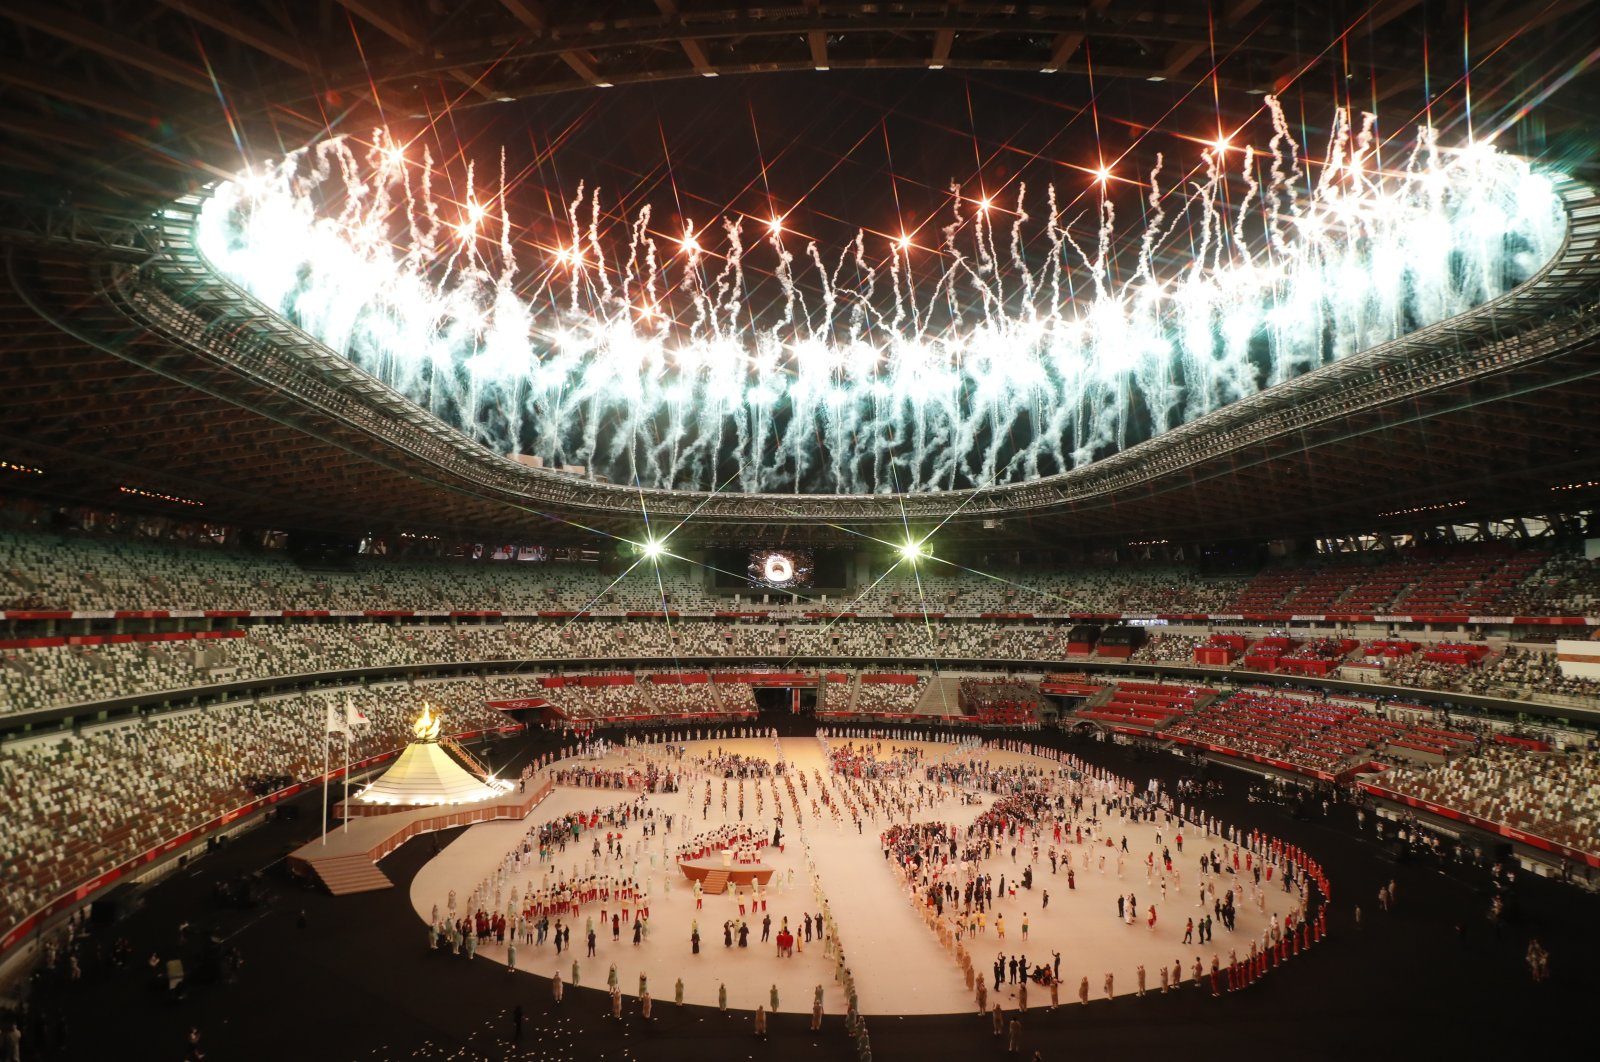 Official opening ceremony of the Olympic Games Tokyo 2020, in Tokyo National Stadium, Japan, July 23, 2021. (Shutterstock Photo)